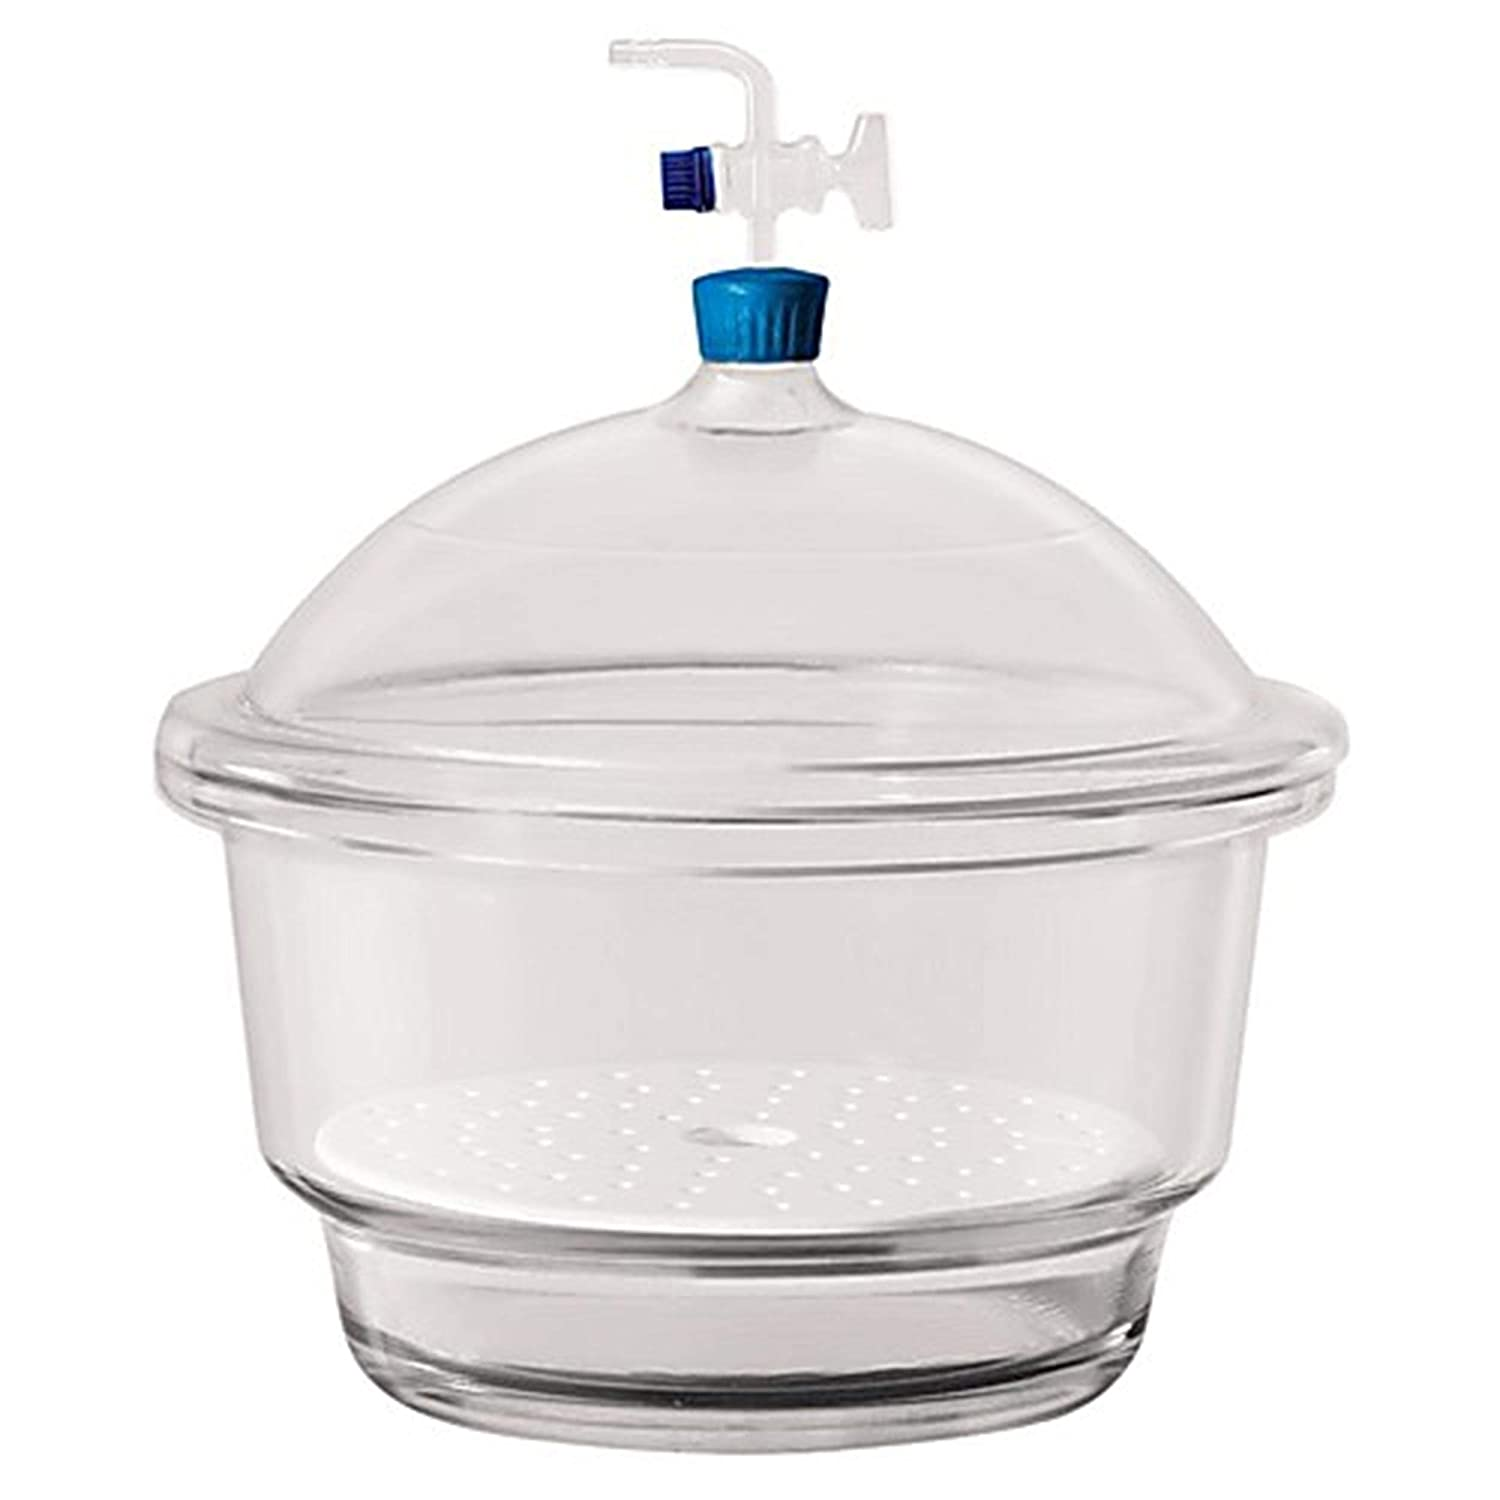 Foxx Life Sciences 3083044 Borosil Borosilicate Glass 3.3 Vacuum Desiccator with Porcelain Plate and PTFE Spindle, 250 mm Ground Flange